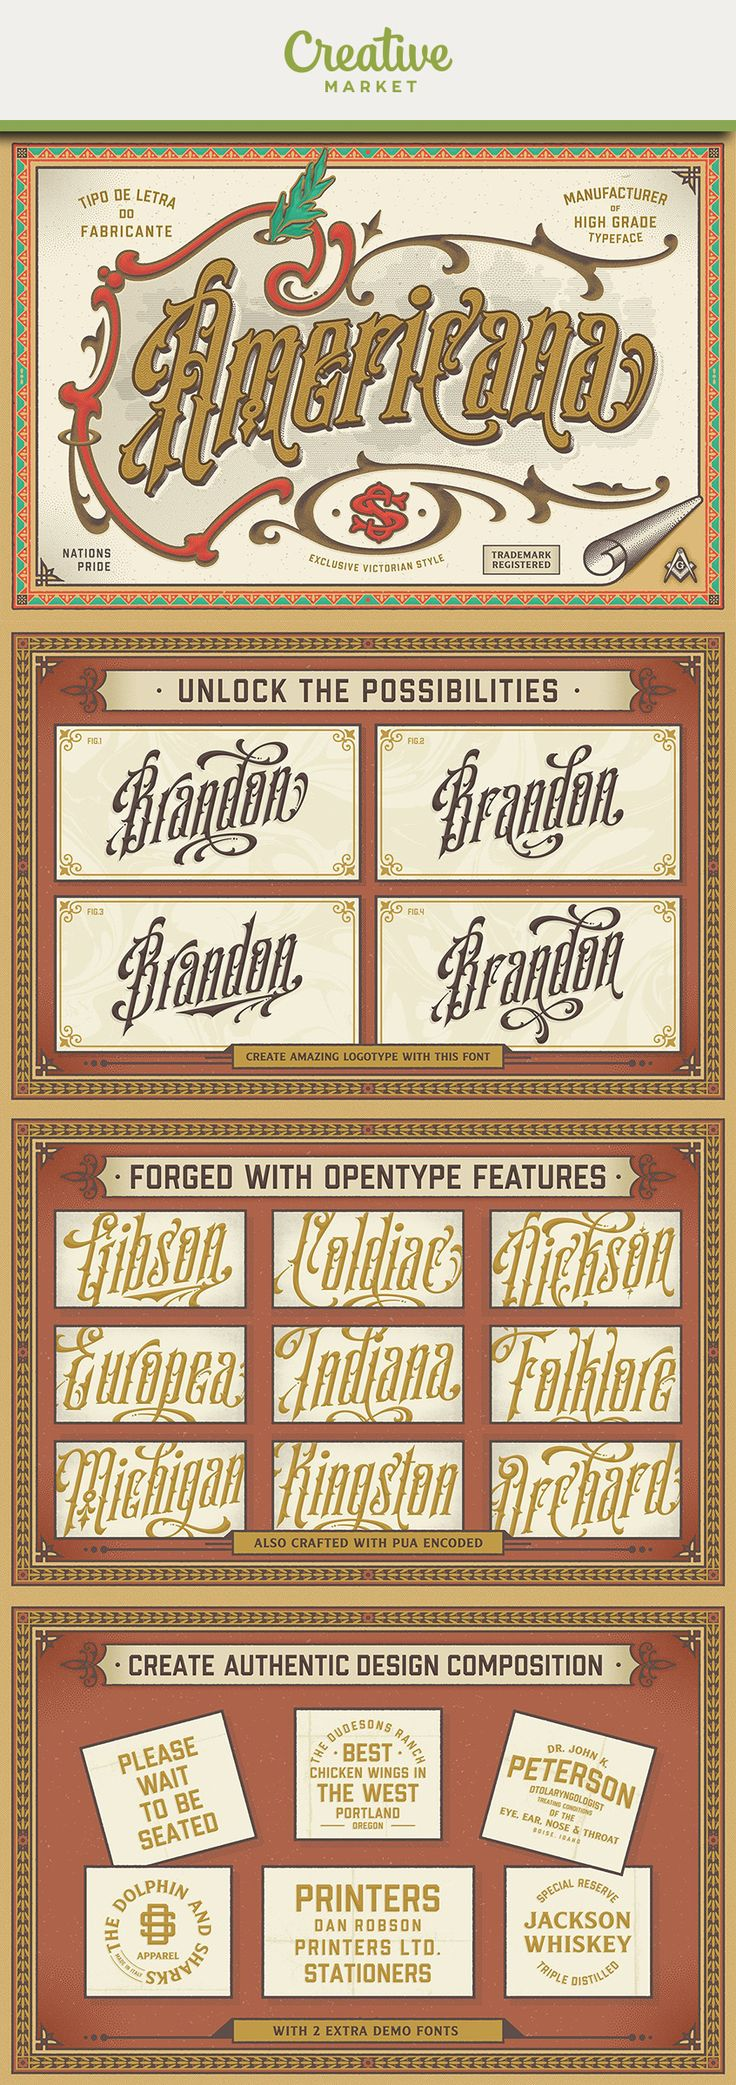 #affiliate Americana Vintage Typeface Recapture the elegance of traditional flourished sign writing and make and provide ideal lettering for period inspired design work such as posters, signage, labels and book covers. You'll find ligatures, 400+ stylistic alternates in keeping with the spirit of this pretty, old-fashioned typeface